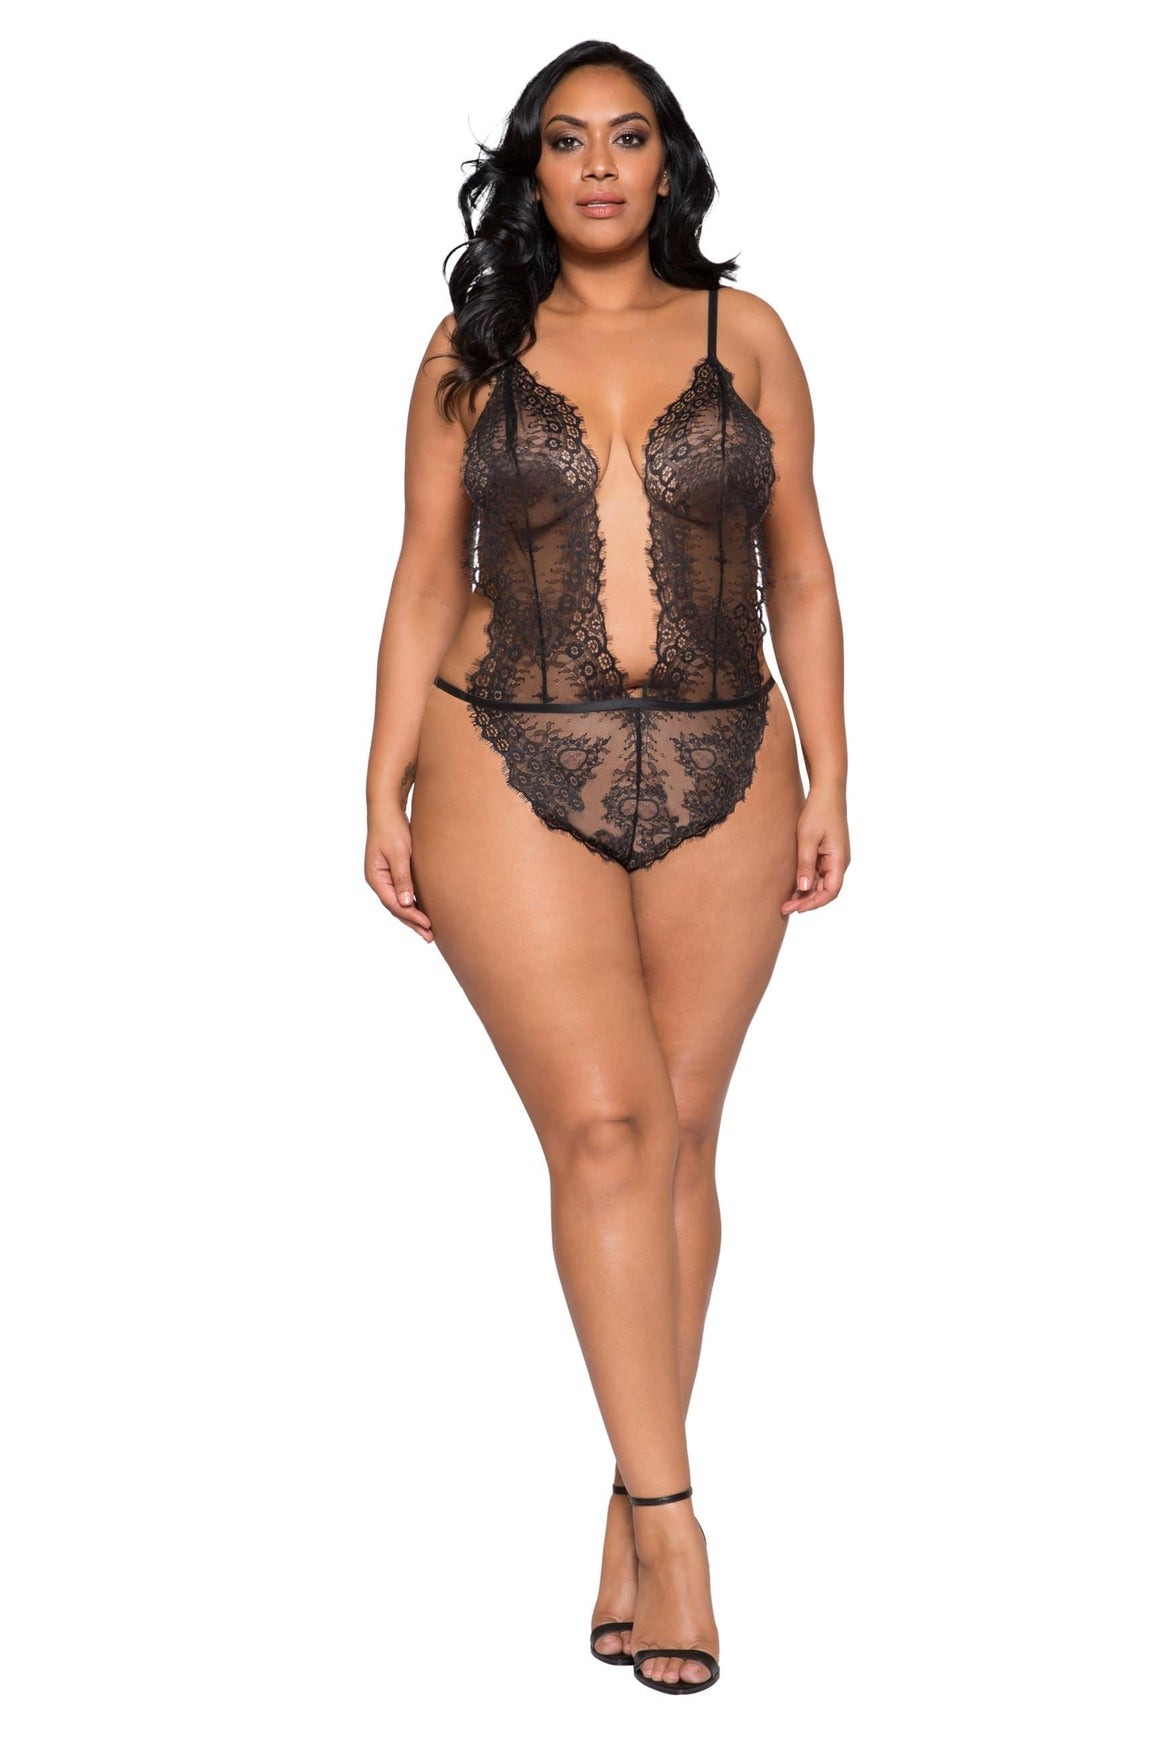 Roma XL / Black Black Plus Size Low Plunge High Leg Teddy (Beige also available) SHC-LI257-XL Black Plus Size Plunge Eyelash Teddy | Roma Costume LI257Q LI258Q Apparel & Accessories > Clothing > One Pieces > Jumpsuits & Rompers